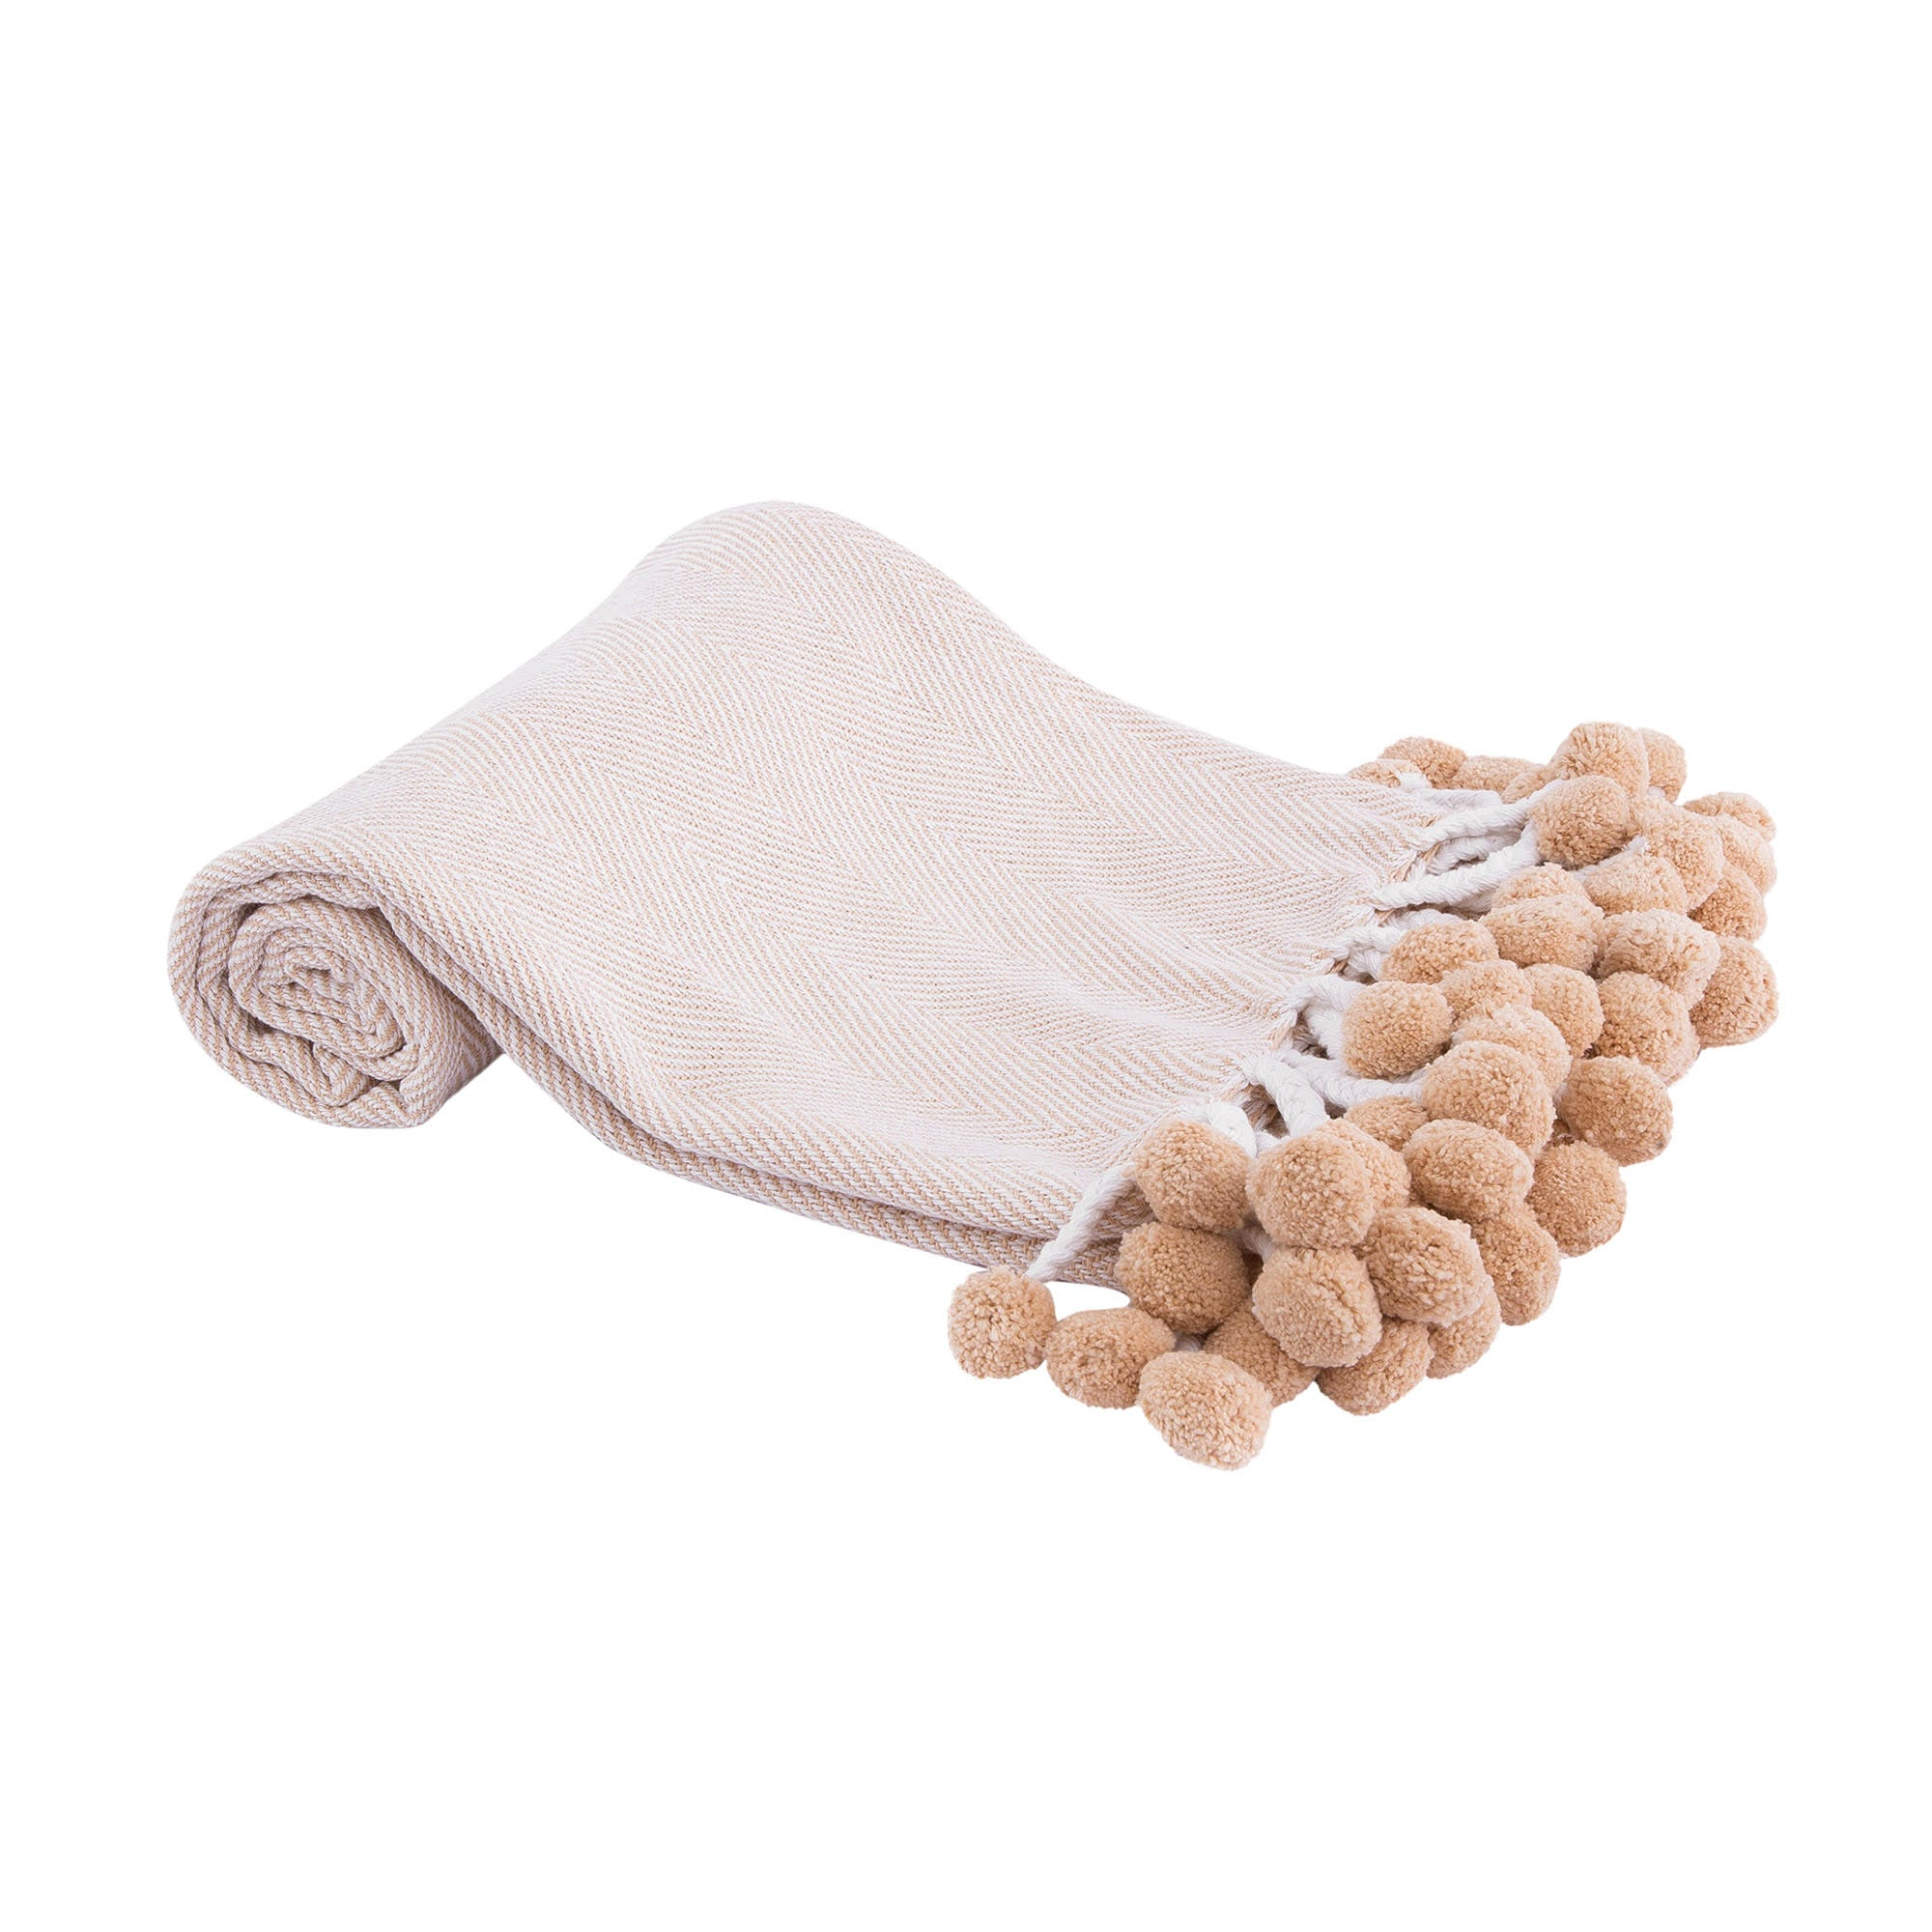 Pom Pom Throw Beige - Magnolia Jewels & More